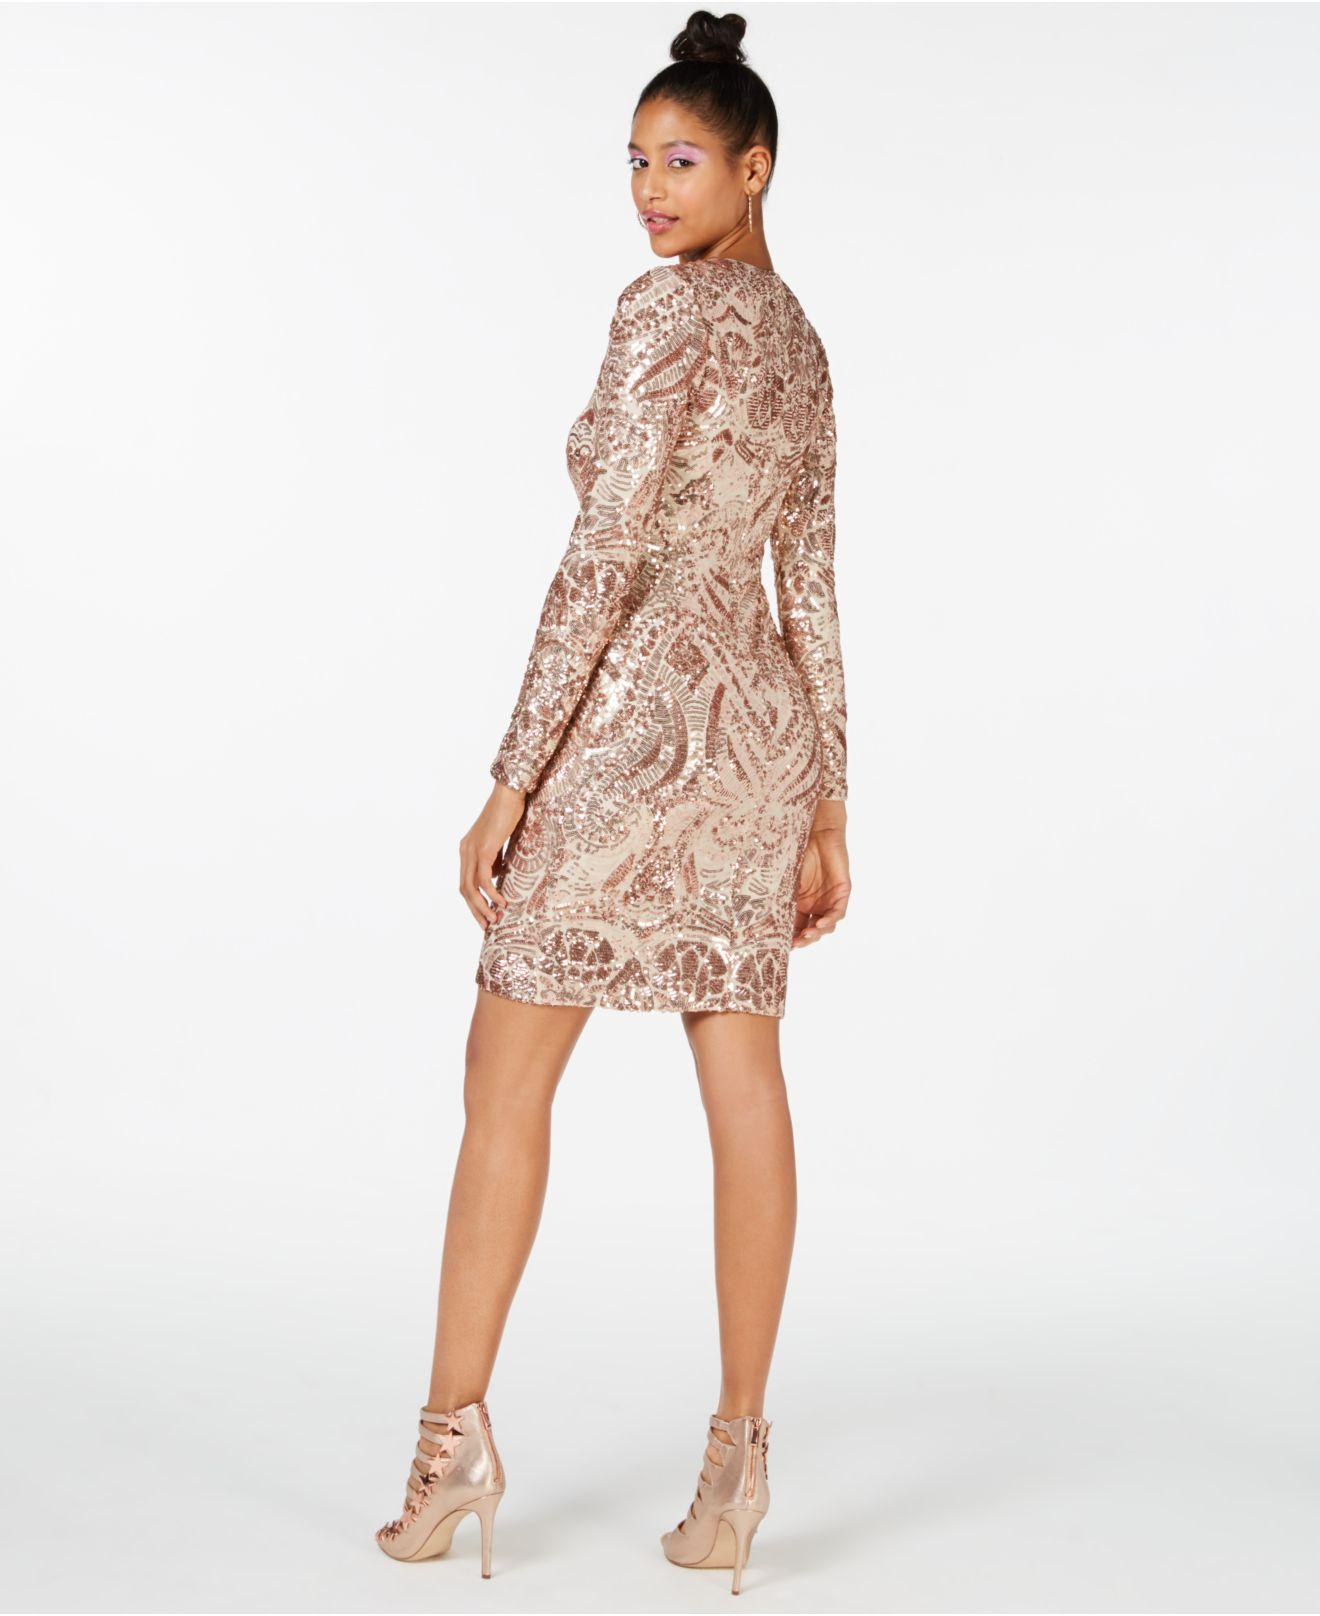 bd8c5461a37 Lyst - Marciano Nude Sequin Bodycon Dress in Pink